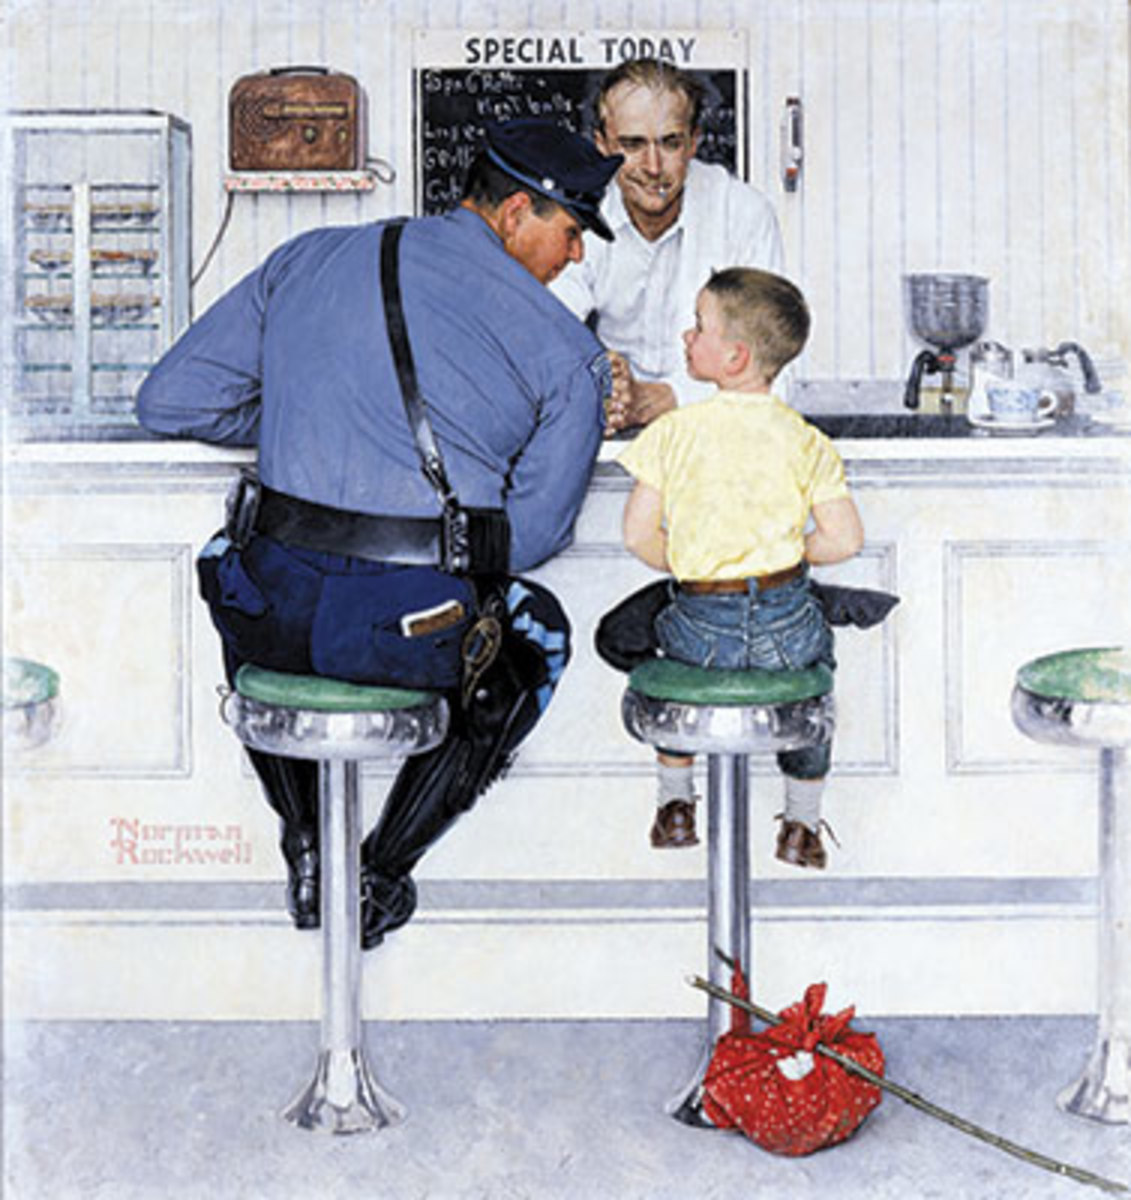 Norman Rockwell's THE RUNAWAY appeared on the cover of The Saturday Evening Post, Sept. 20, 1958. Image courtesy Norman Rockwell Museum Collection